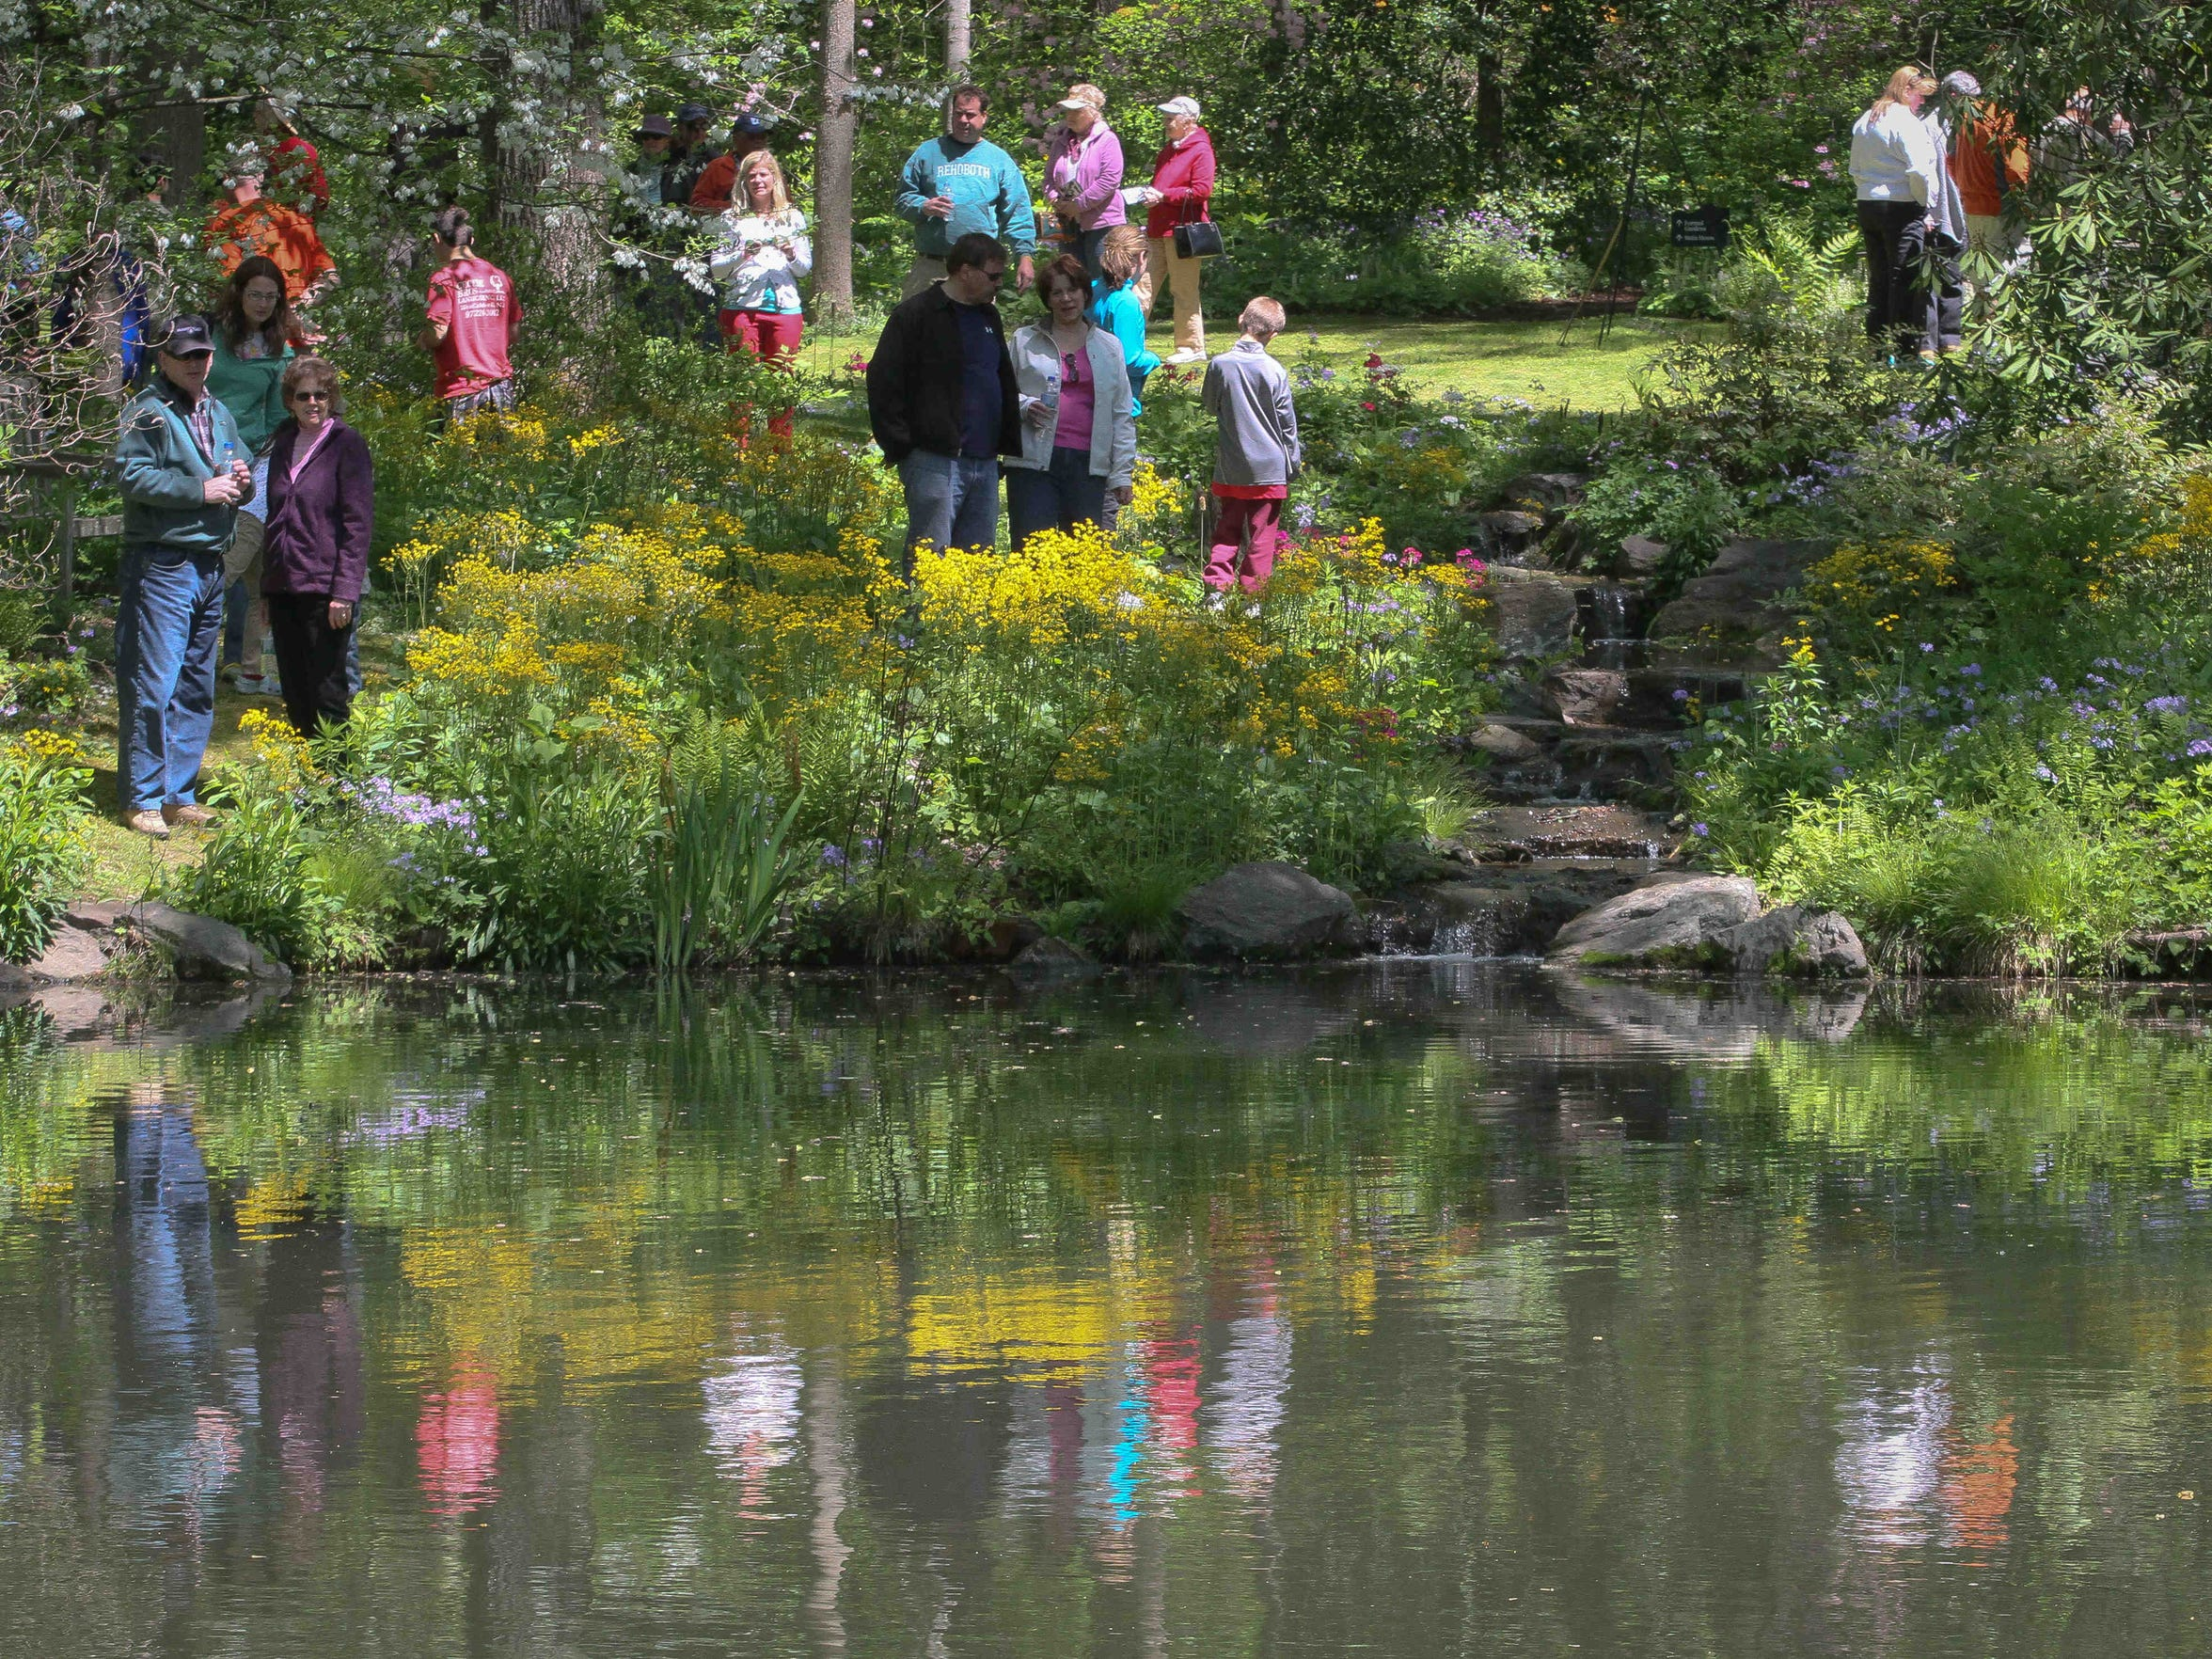 The annual Wildflower Celebration returns to Mt. Cuba this Sunday.